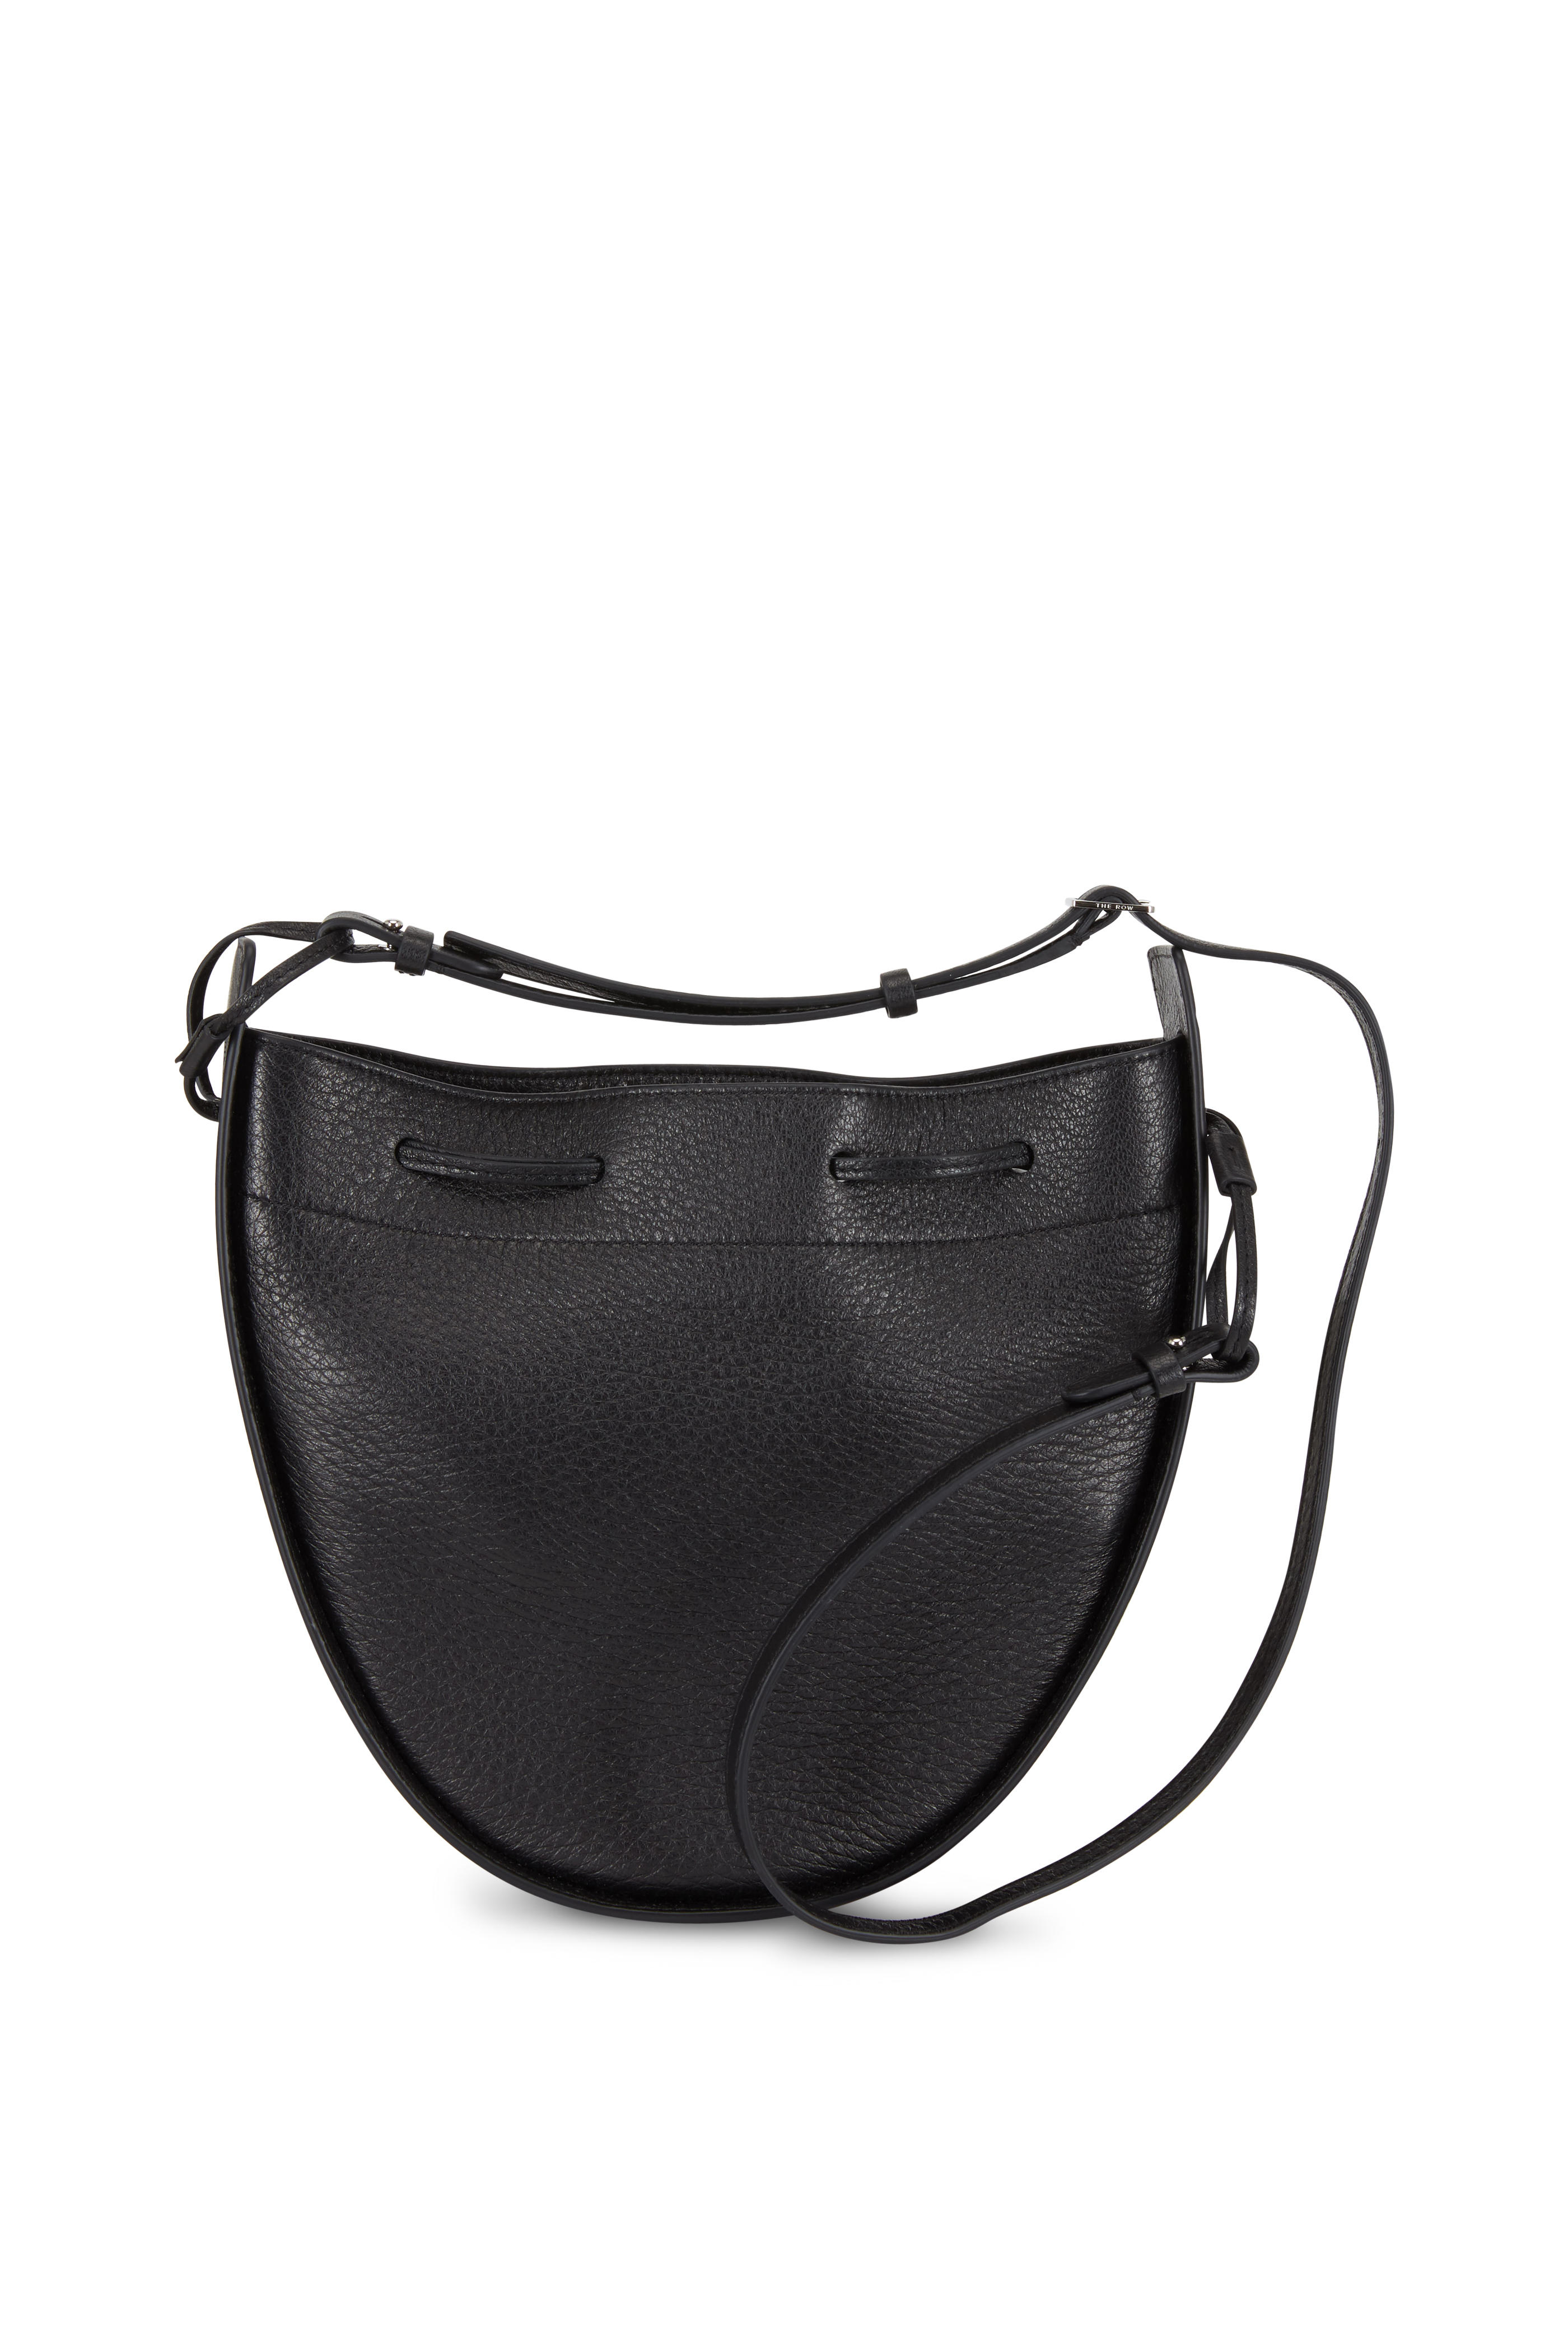 The Row Black Leather Drawstring Pouch Crossbody Bag